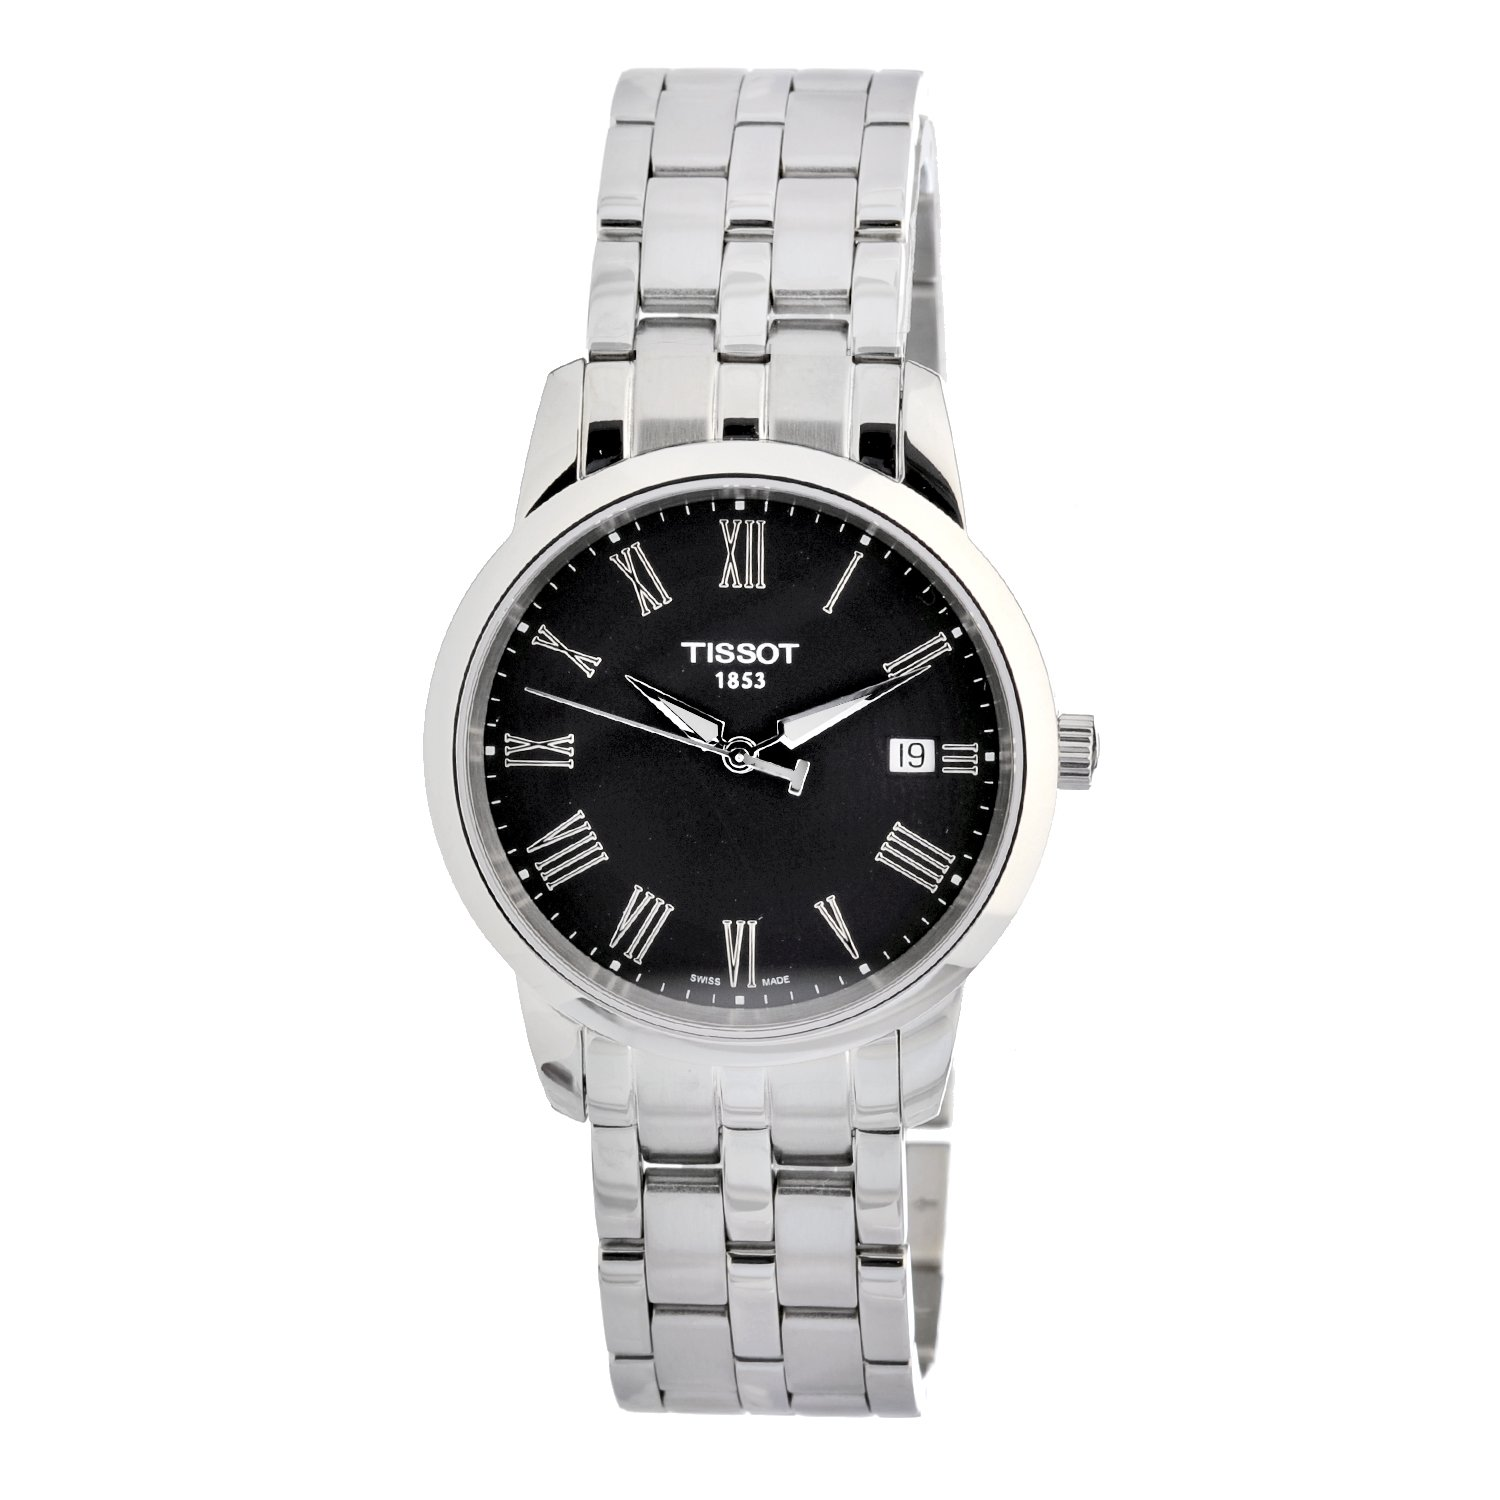 Tissot Men&#8217;s T0334101105300 Classic Dream Stainless Steel Watch $165